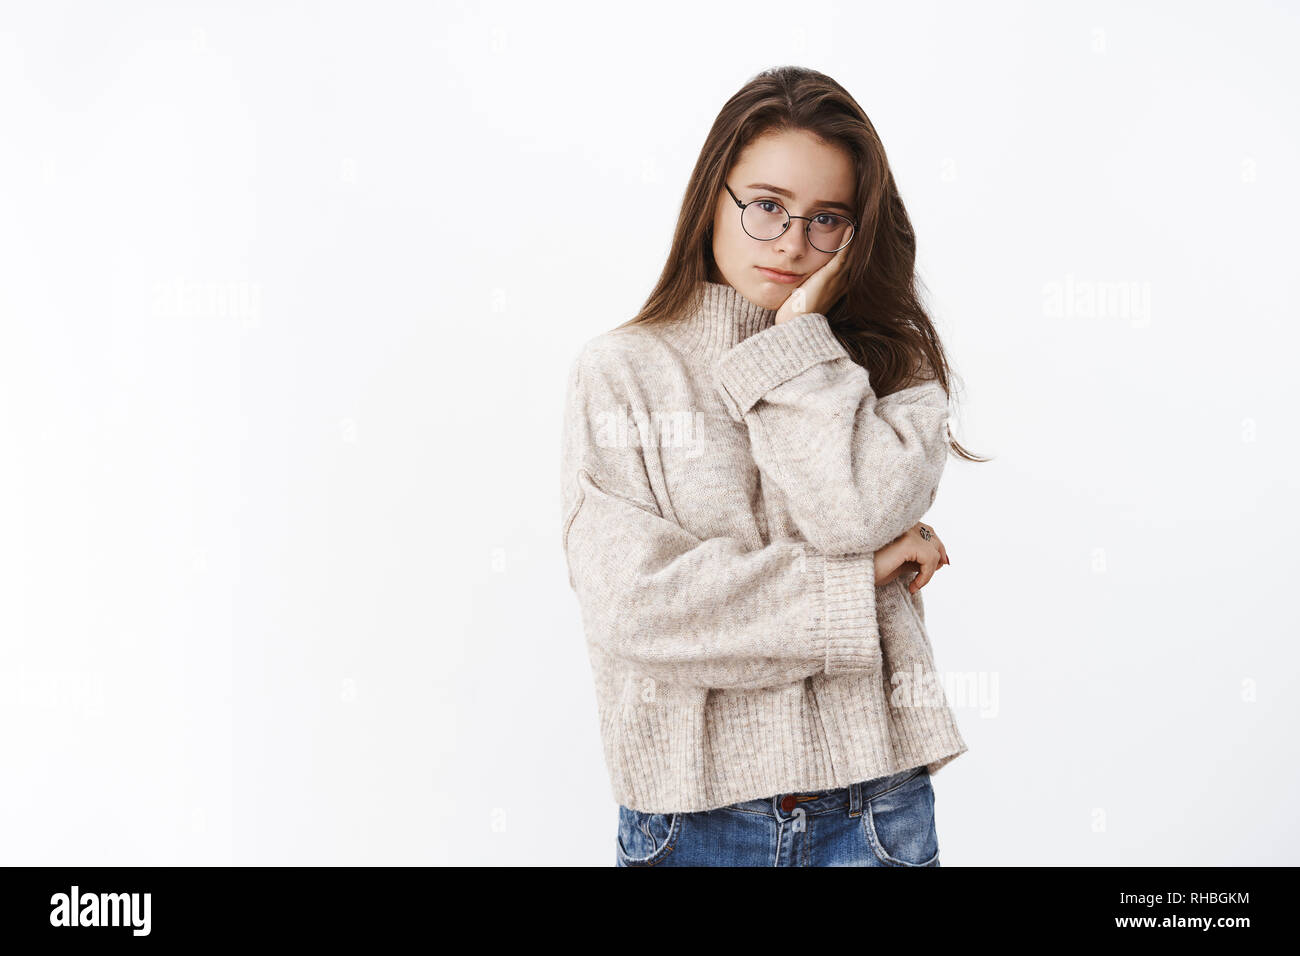 Portrait of tired and drained cute female freelancer in sweater and pc glasses leaning head on palm looking upset and exhausted at camera as having - Stock Image